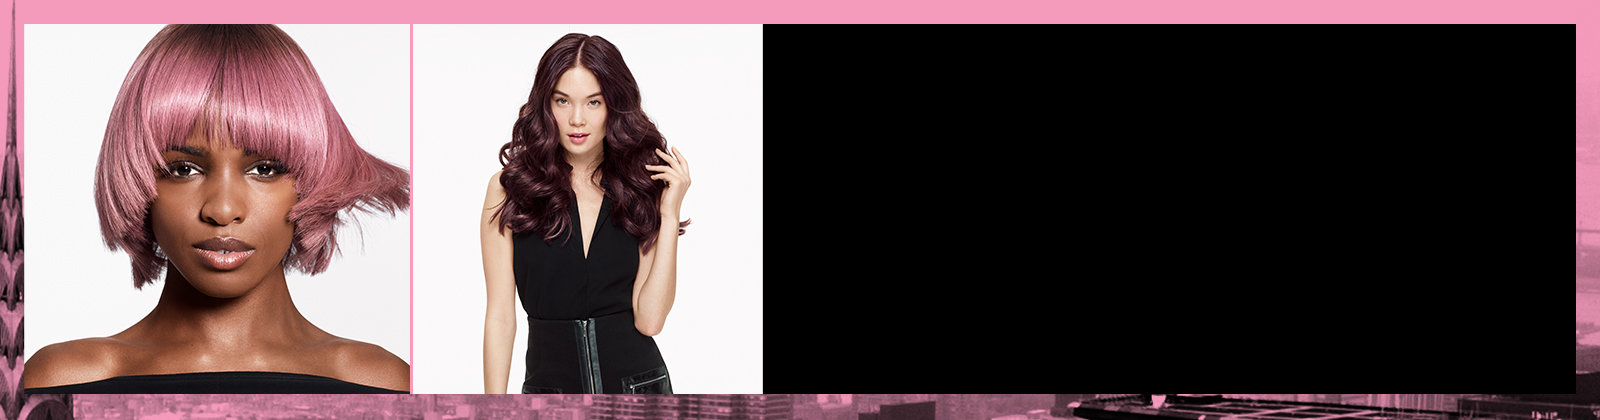 Redken-2019-Shades-EQ-Violet-Rose-Homepage-Mobile